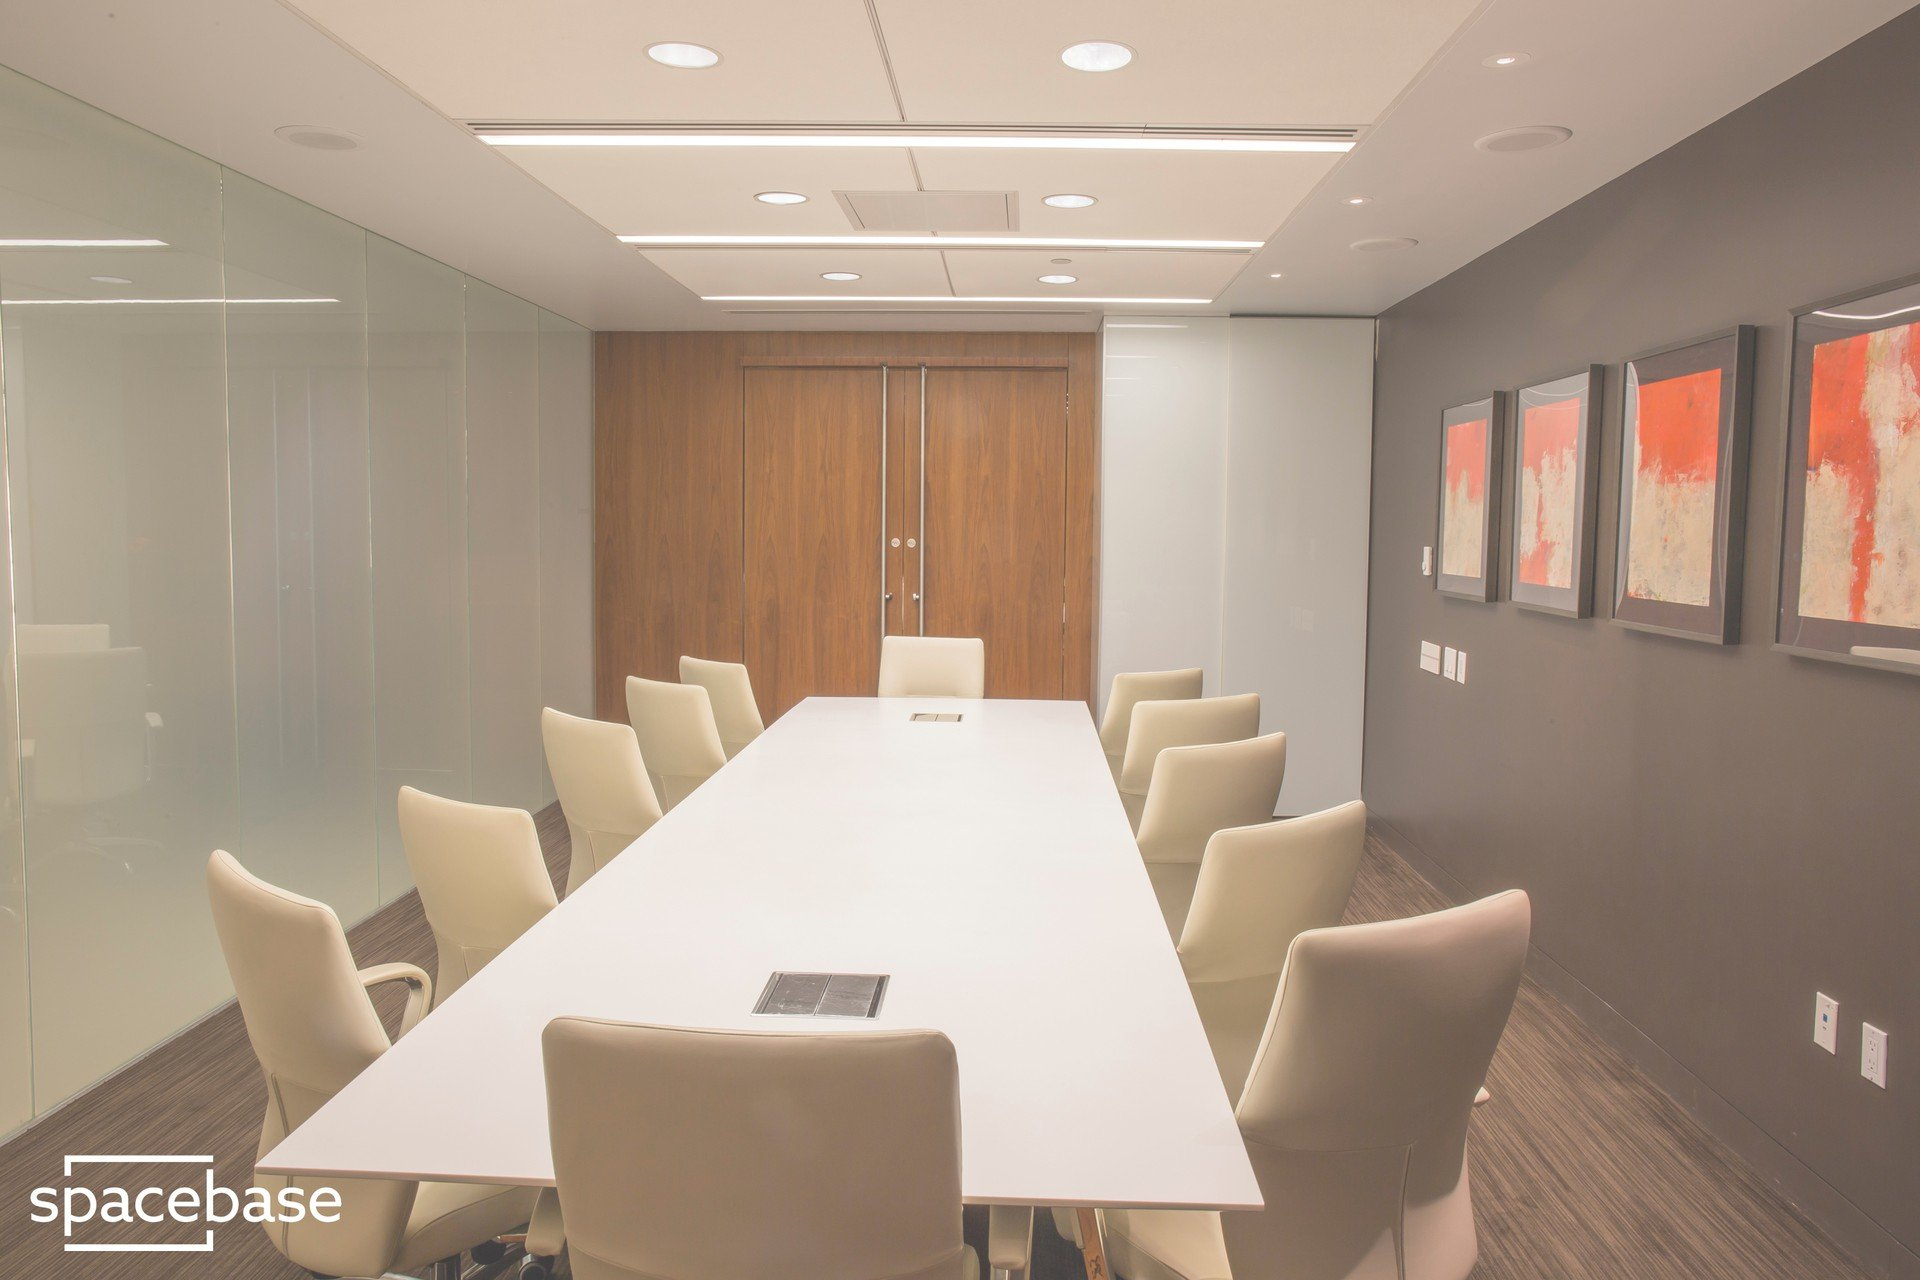 NYC conference rooms Meetingraum Work Better - Harvard MR image 10